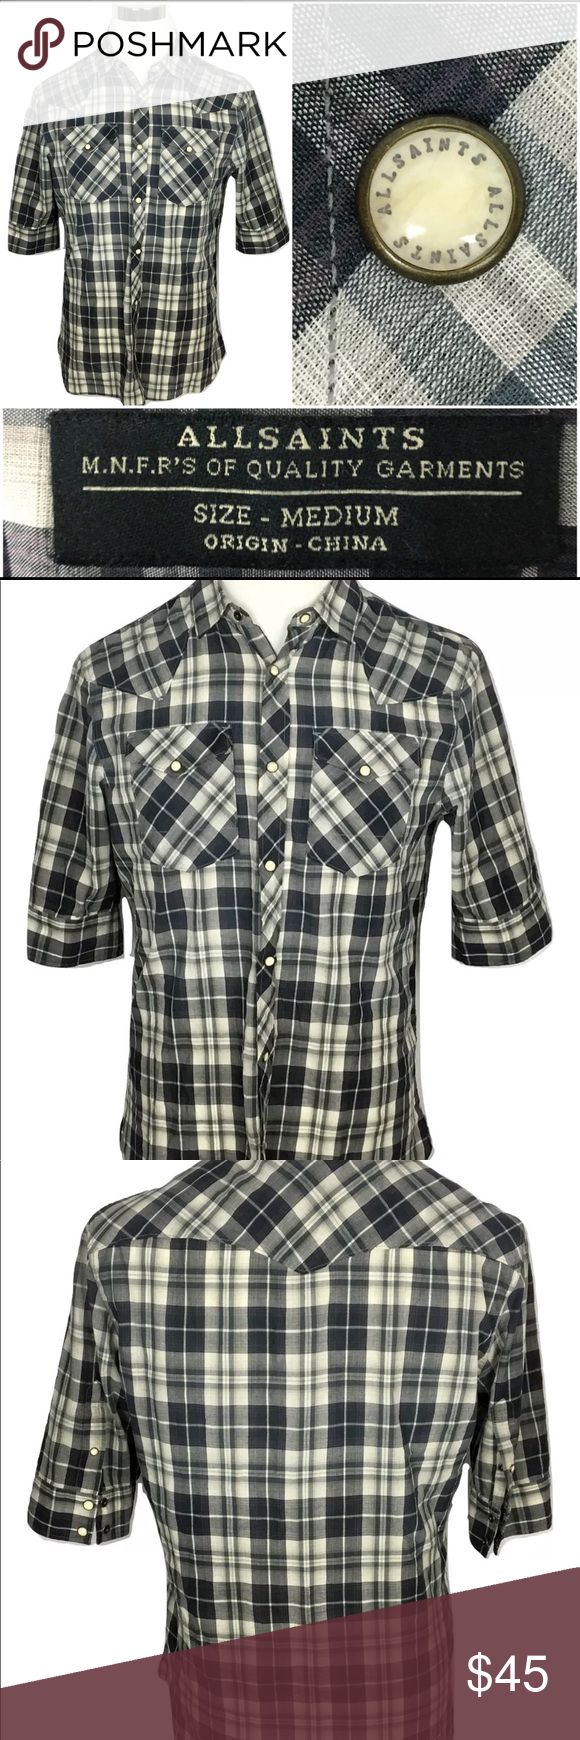 "All Saints Men's plaid shirt snap buttons Size M An excellent used condition All Saints Men's black and white plaid shirt with snap buttons. Size Medium.  Dimensions:  Length:- 28"" Chest:- 21"" Shoulder:- 18"" Sleeve:- Short sleeved  Thanks for viewing! All Saints Shirts Casual Button Down Shirts"